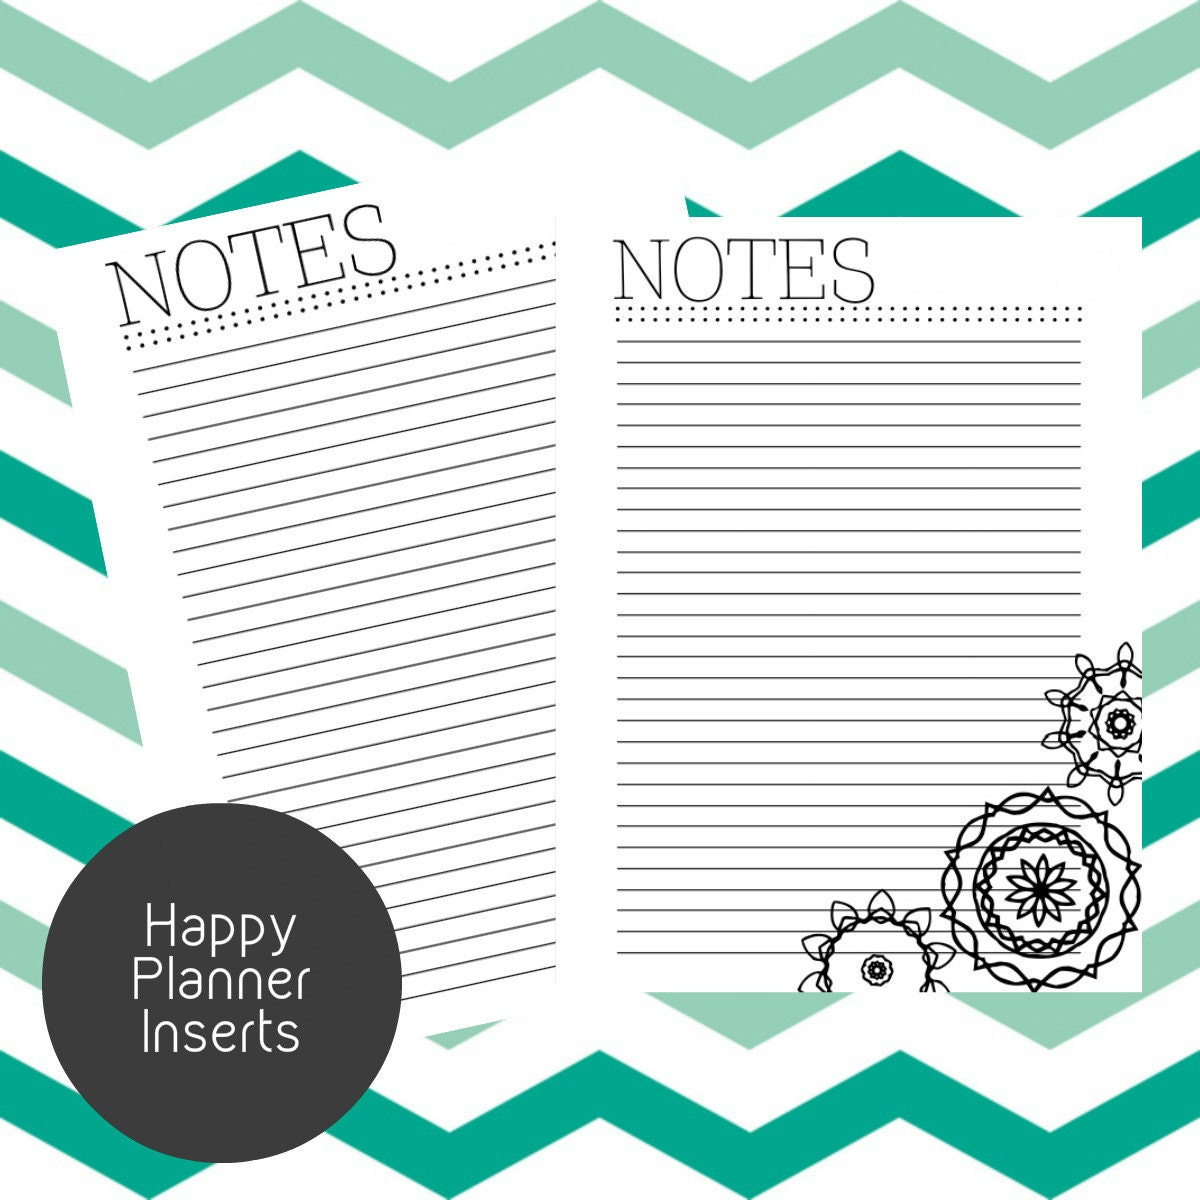 Agile image in happy planner printable inserts